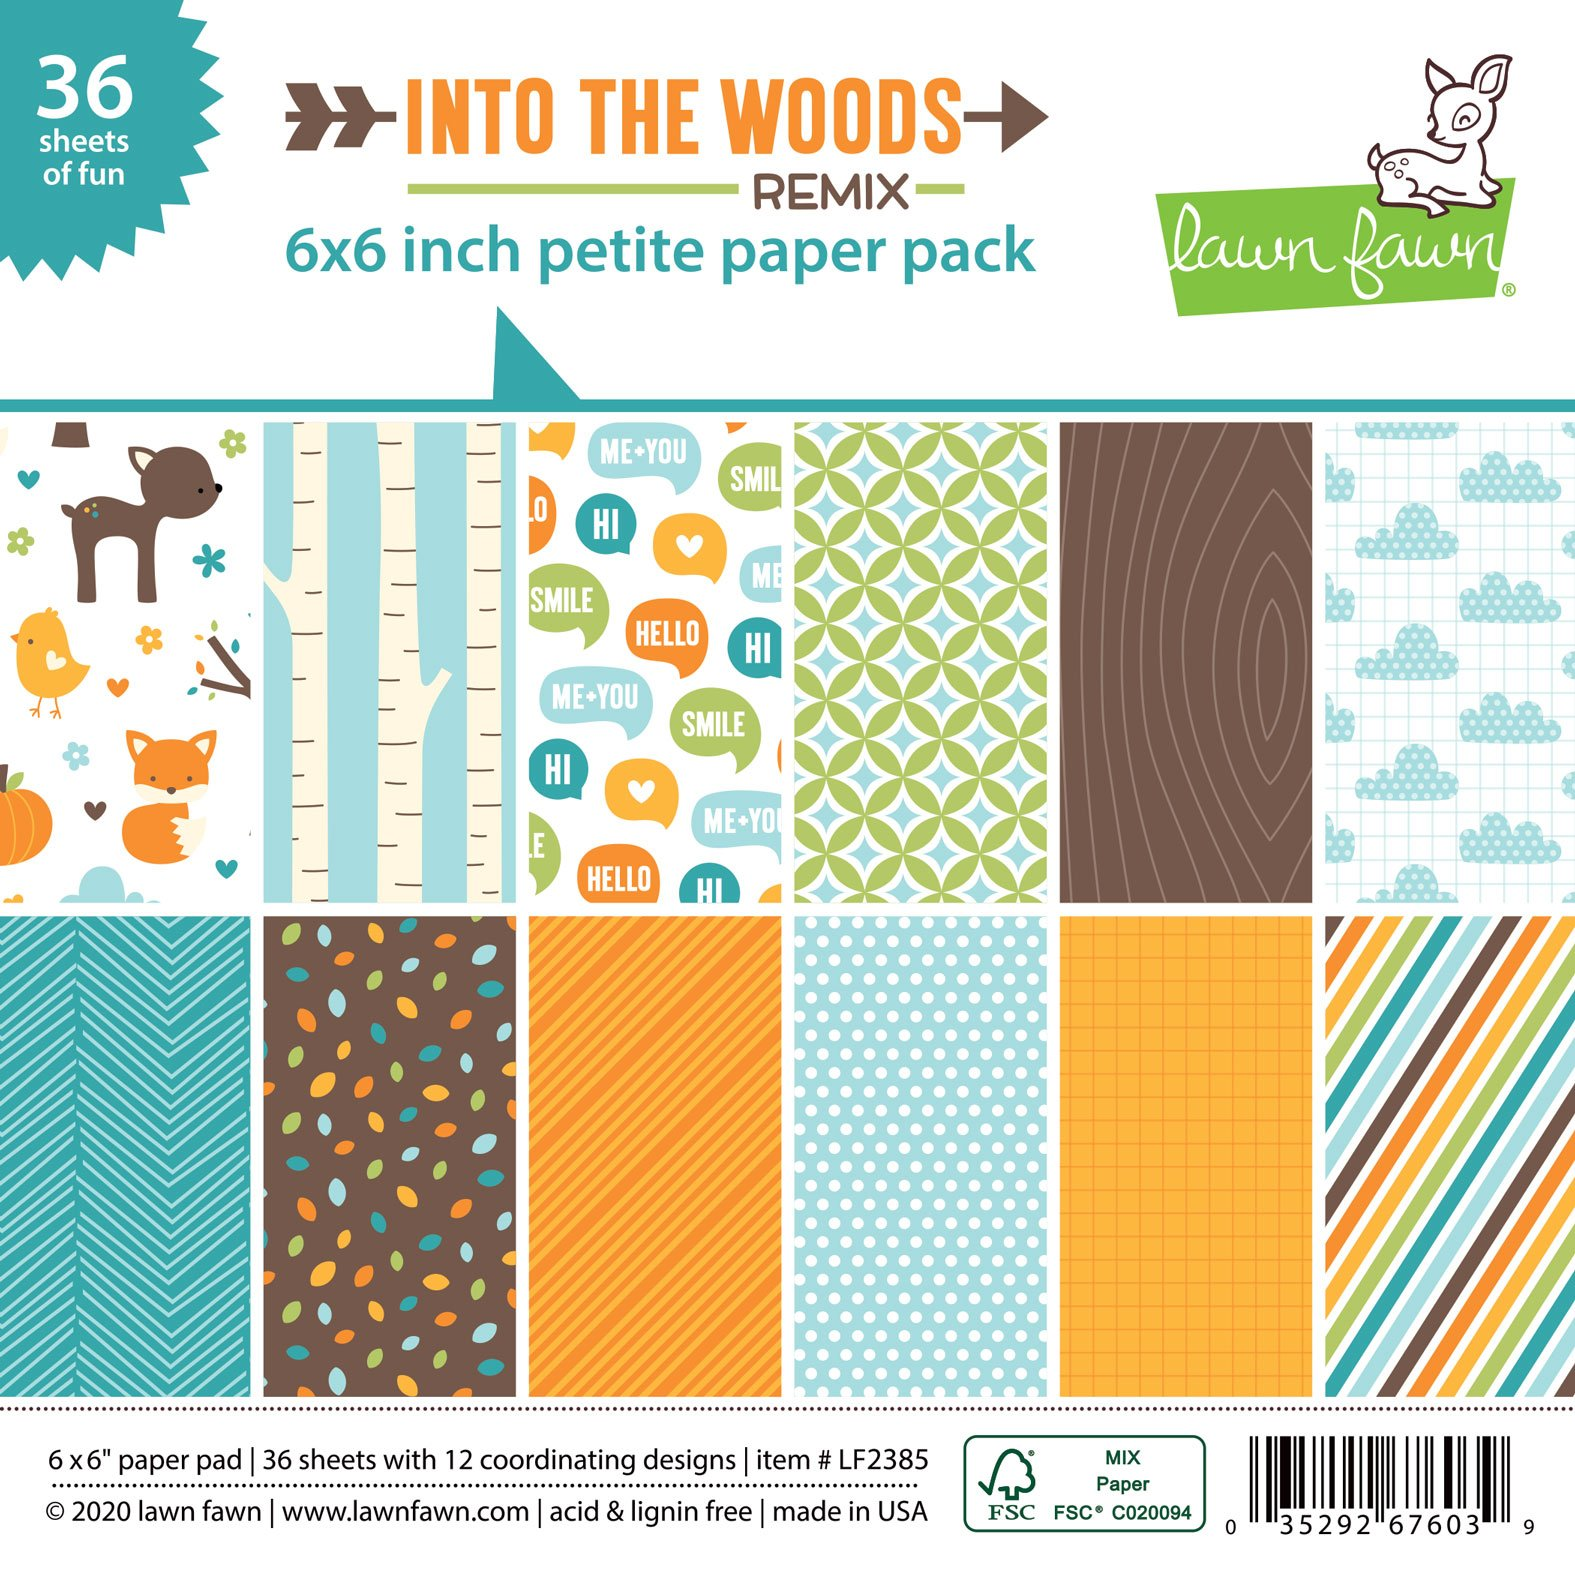 Lawn Fawn Into The Woods Remix Petite Paper Pack